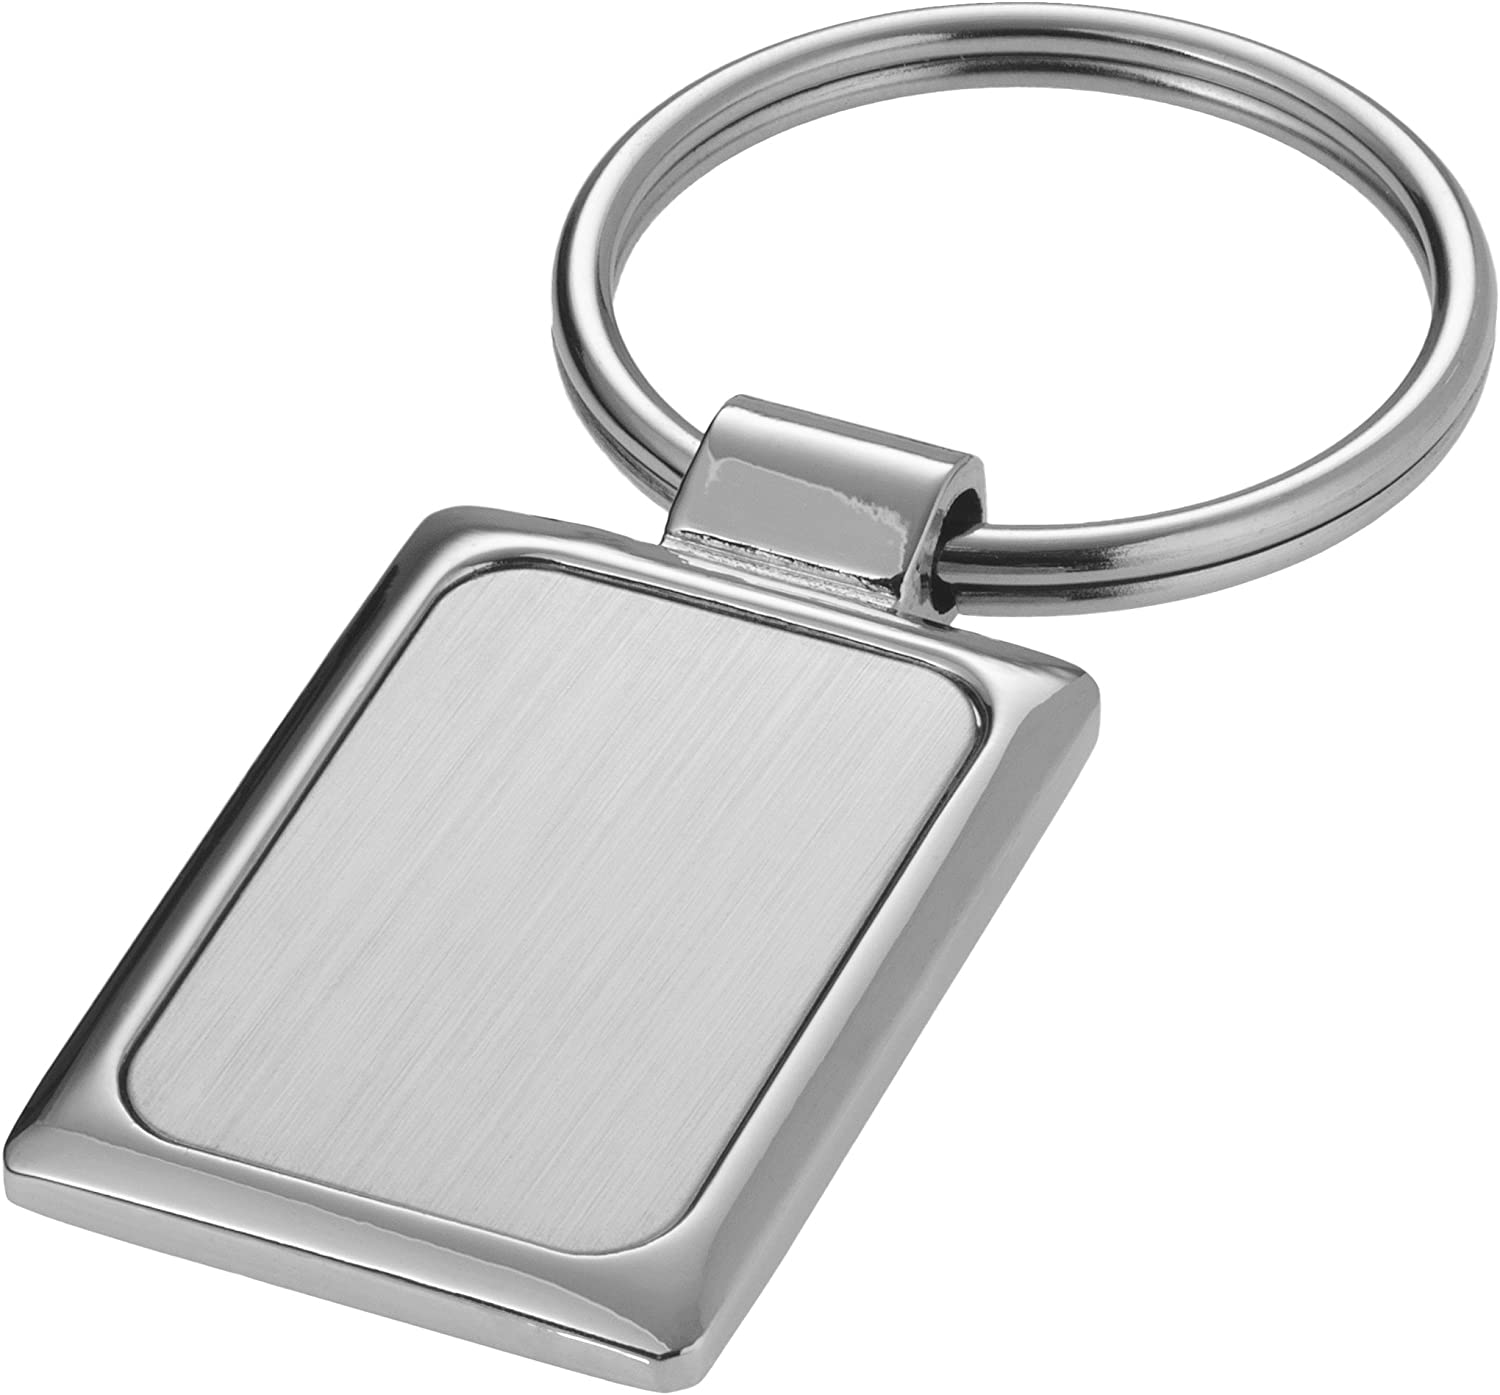 1.7 x 1 x 0.2 inches Silver Bullet Sergio Rectangular Key Chain